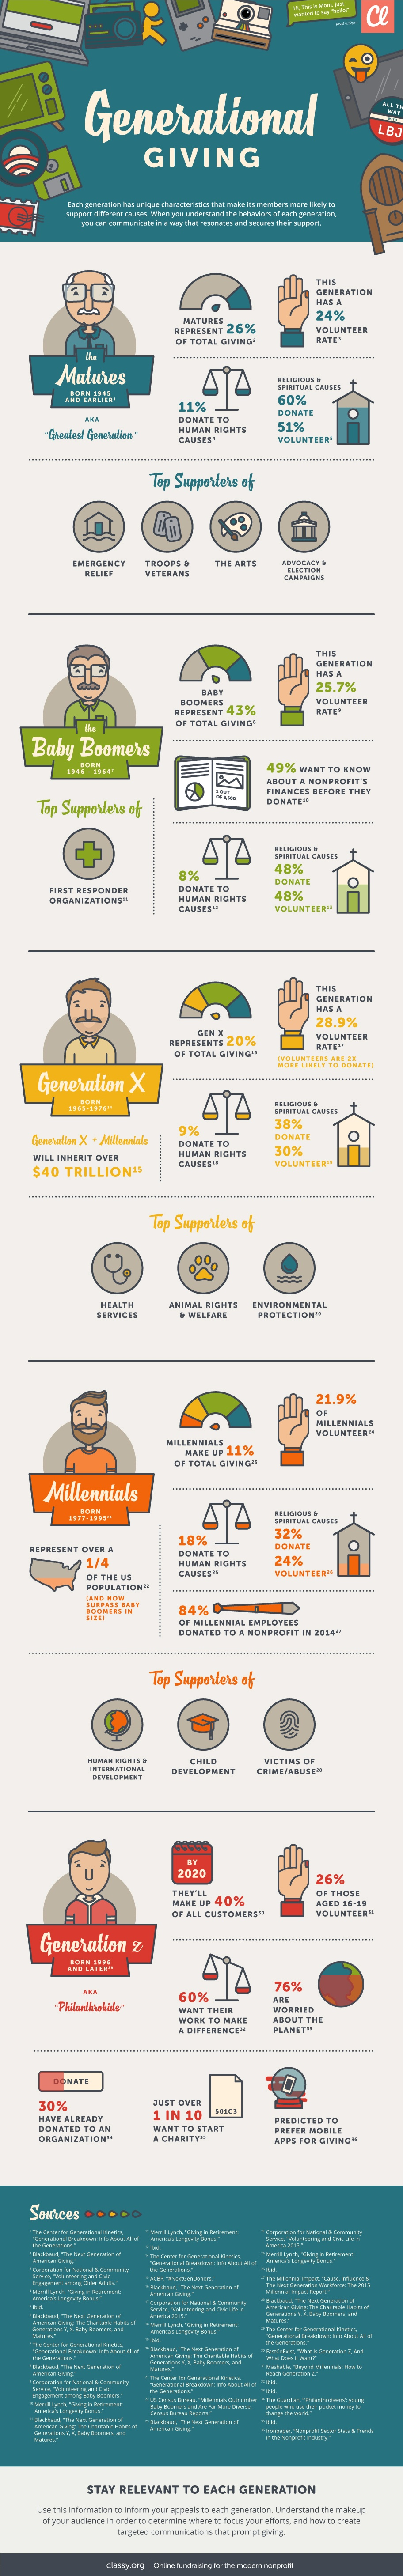 Generational Giving infographic